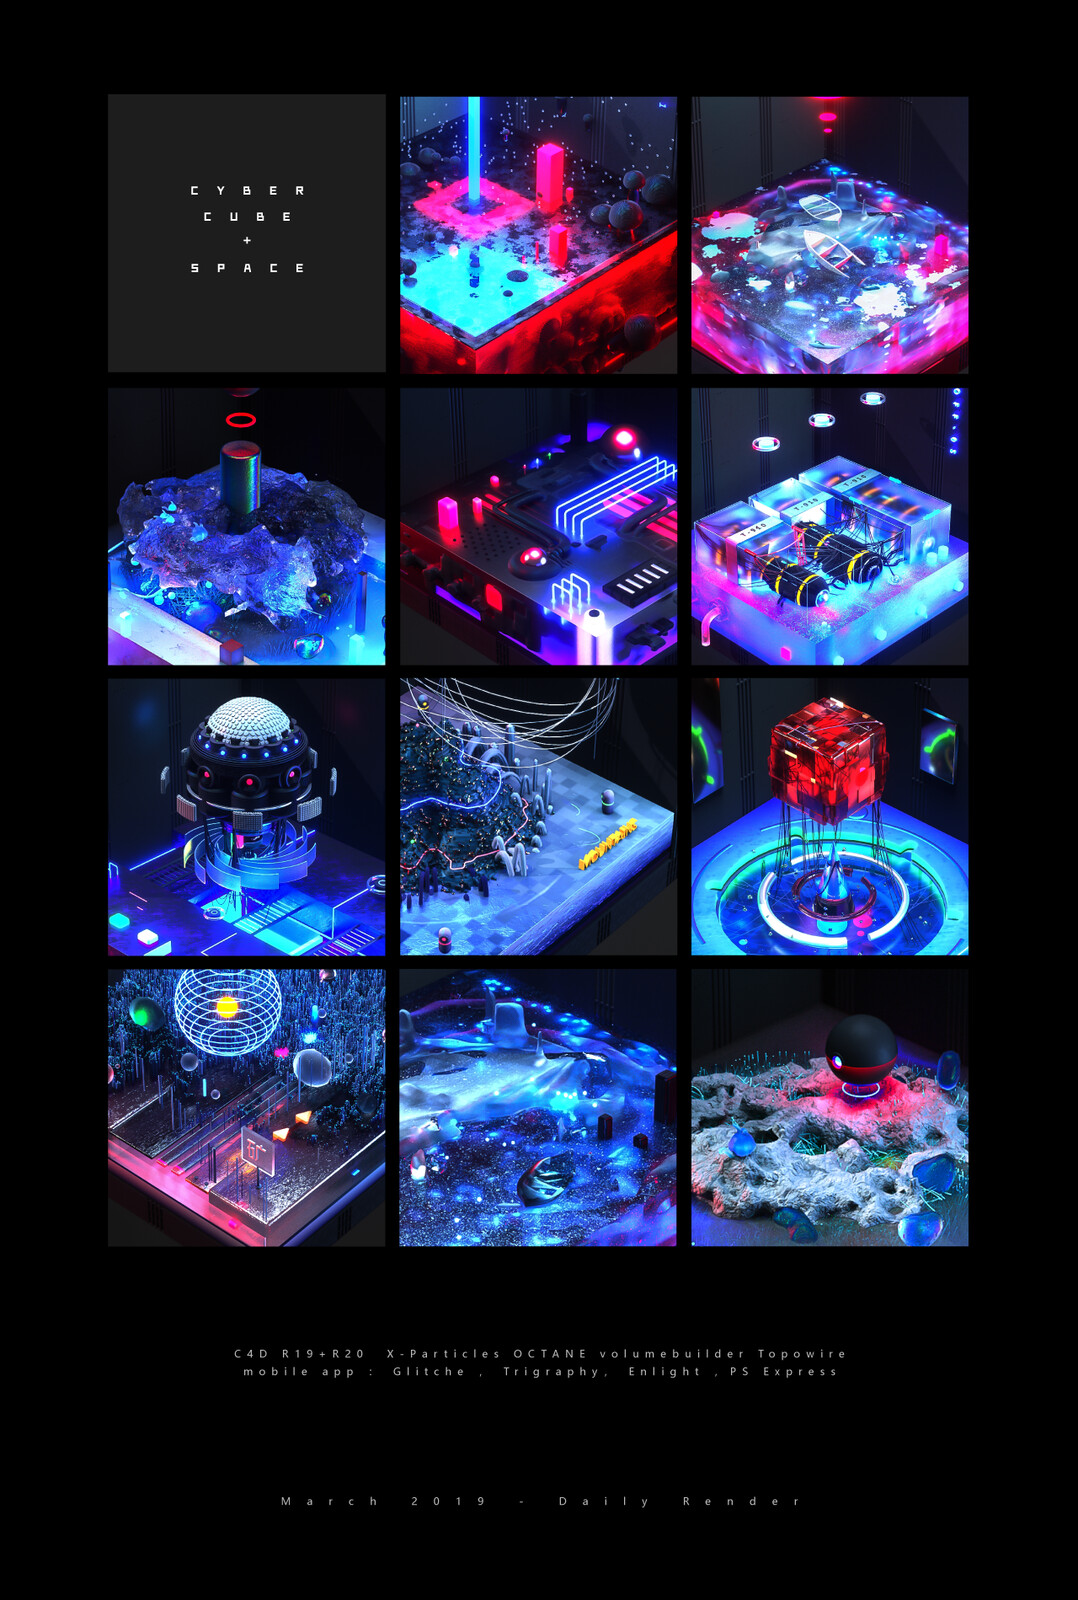 ArtStation - space cube | daily render, Tong X